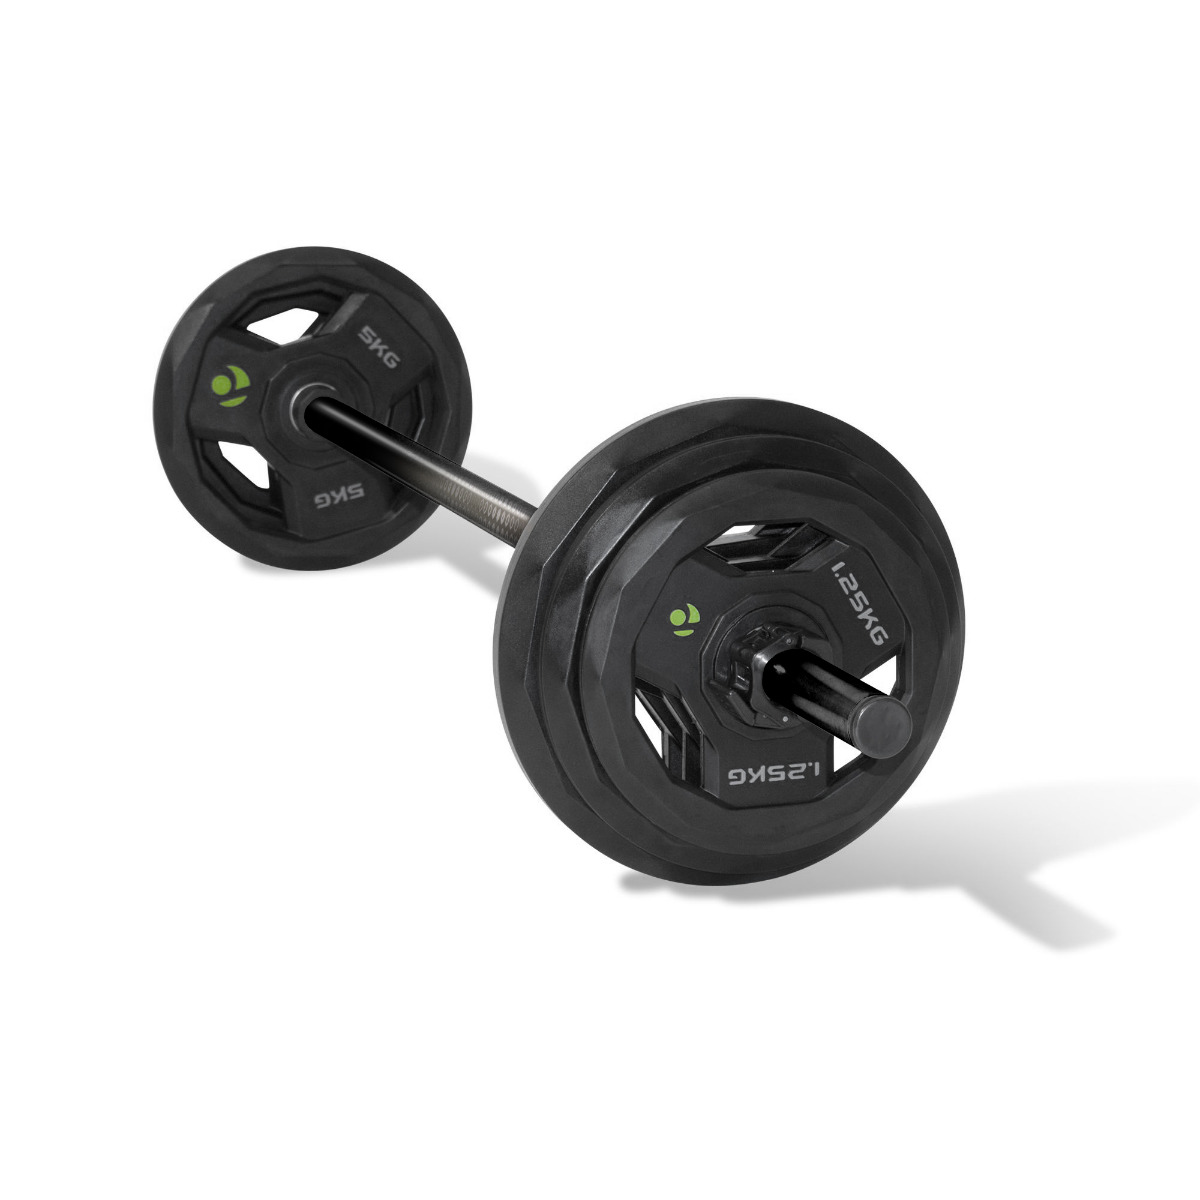 Pu Body Pump Set Buy Online At Physical Company